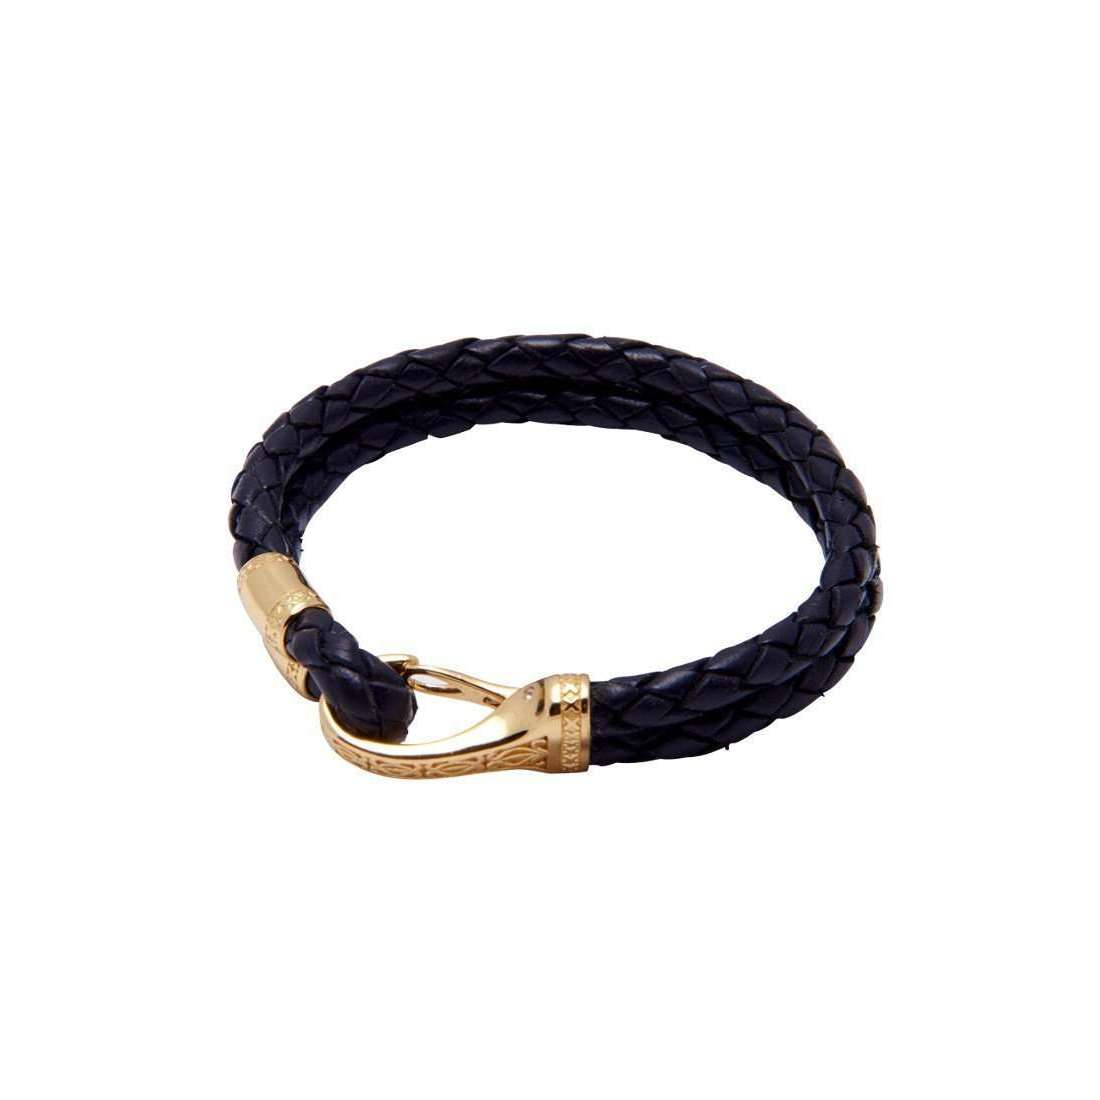 Nialaya Blue Leather Bracelet with Gold Clasp - Extra Large 04bCrhq